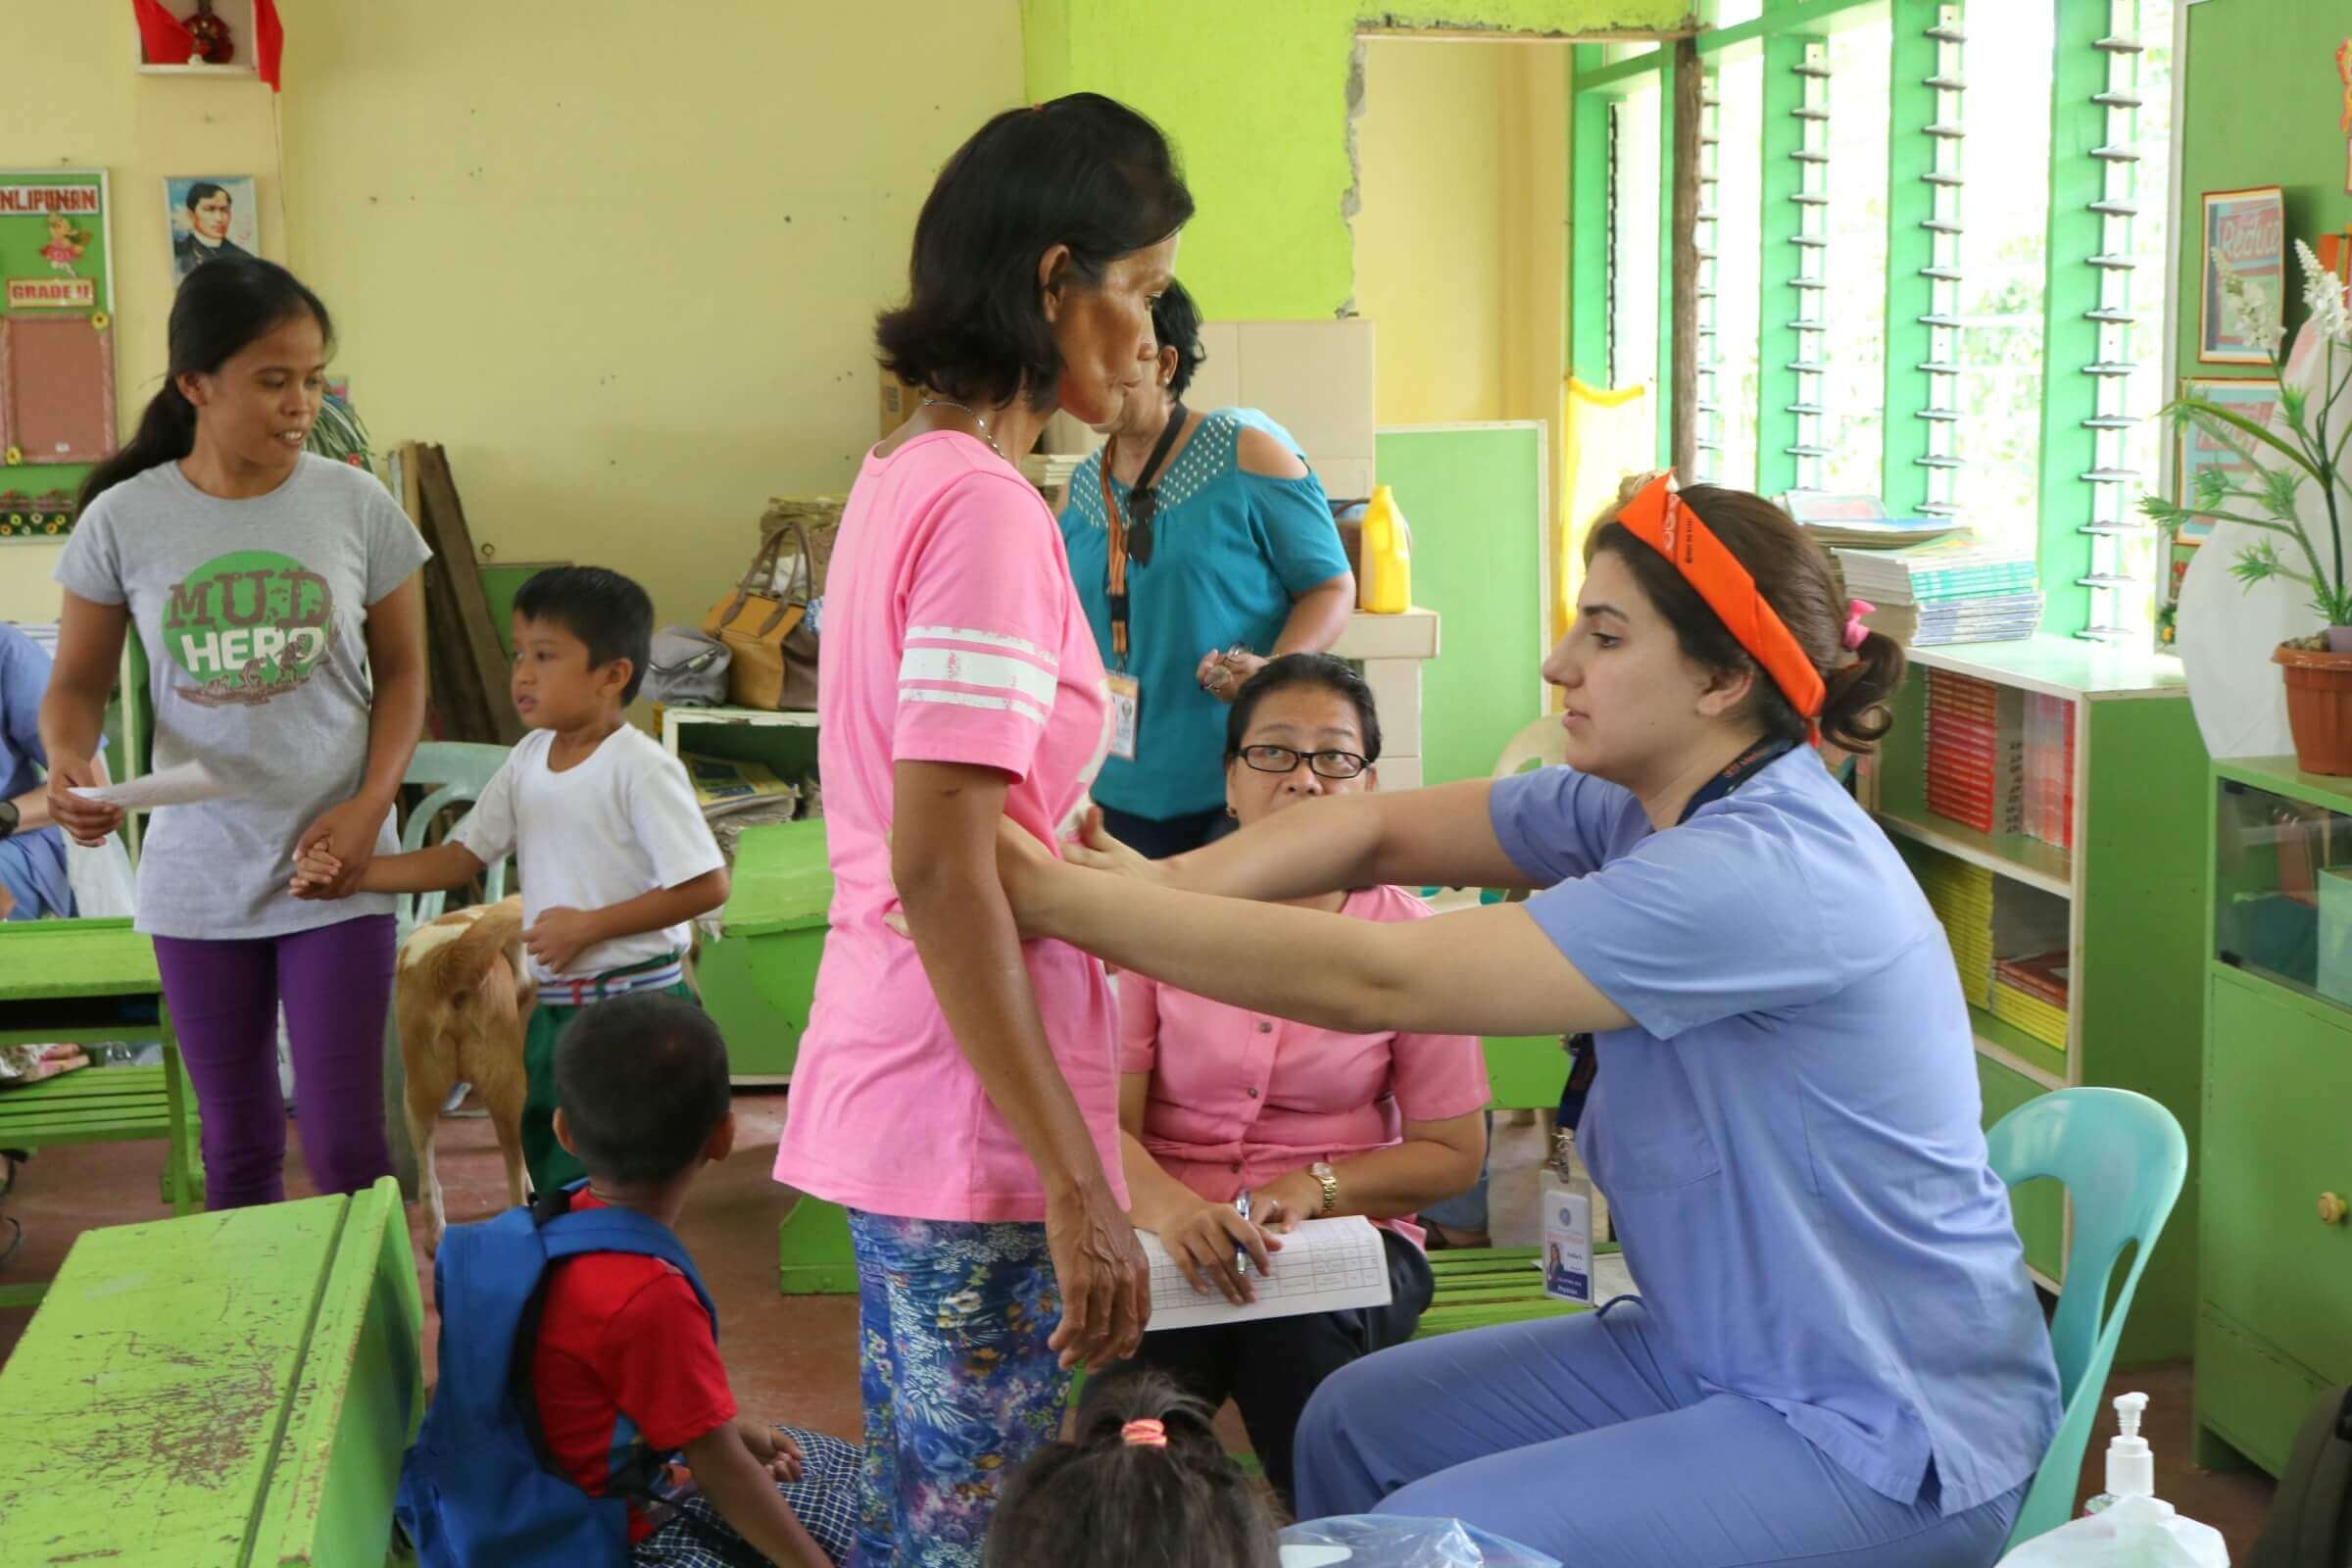 IMR Medical Mission @ Brgy. San Pedro